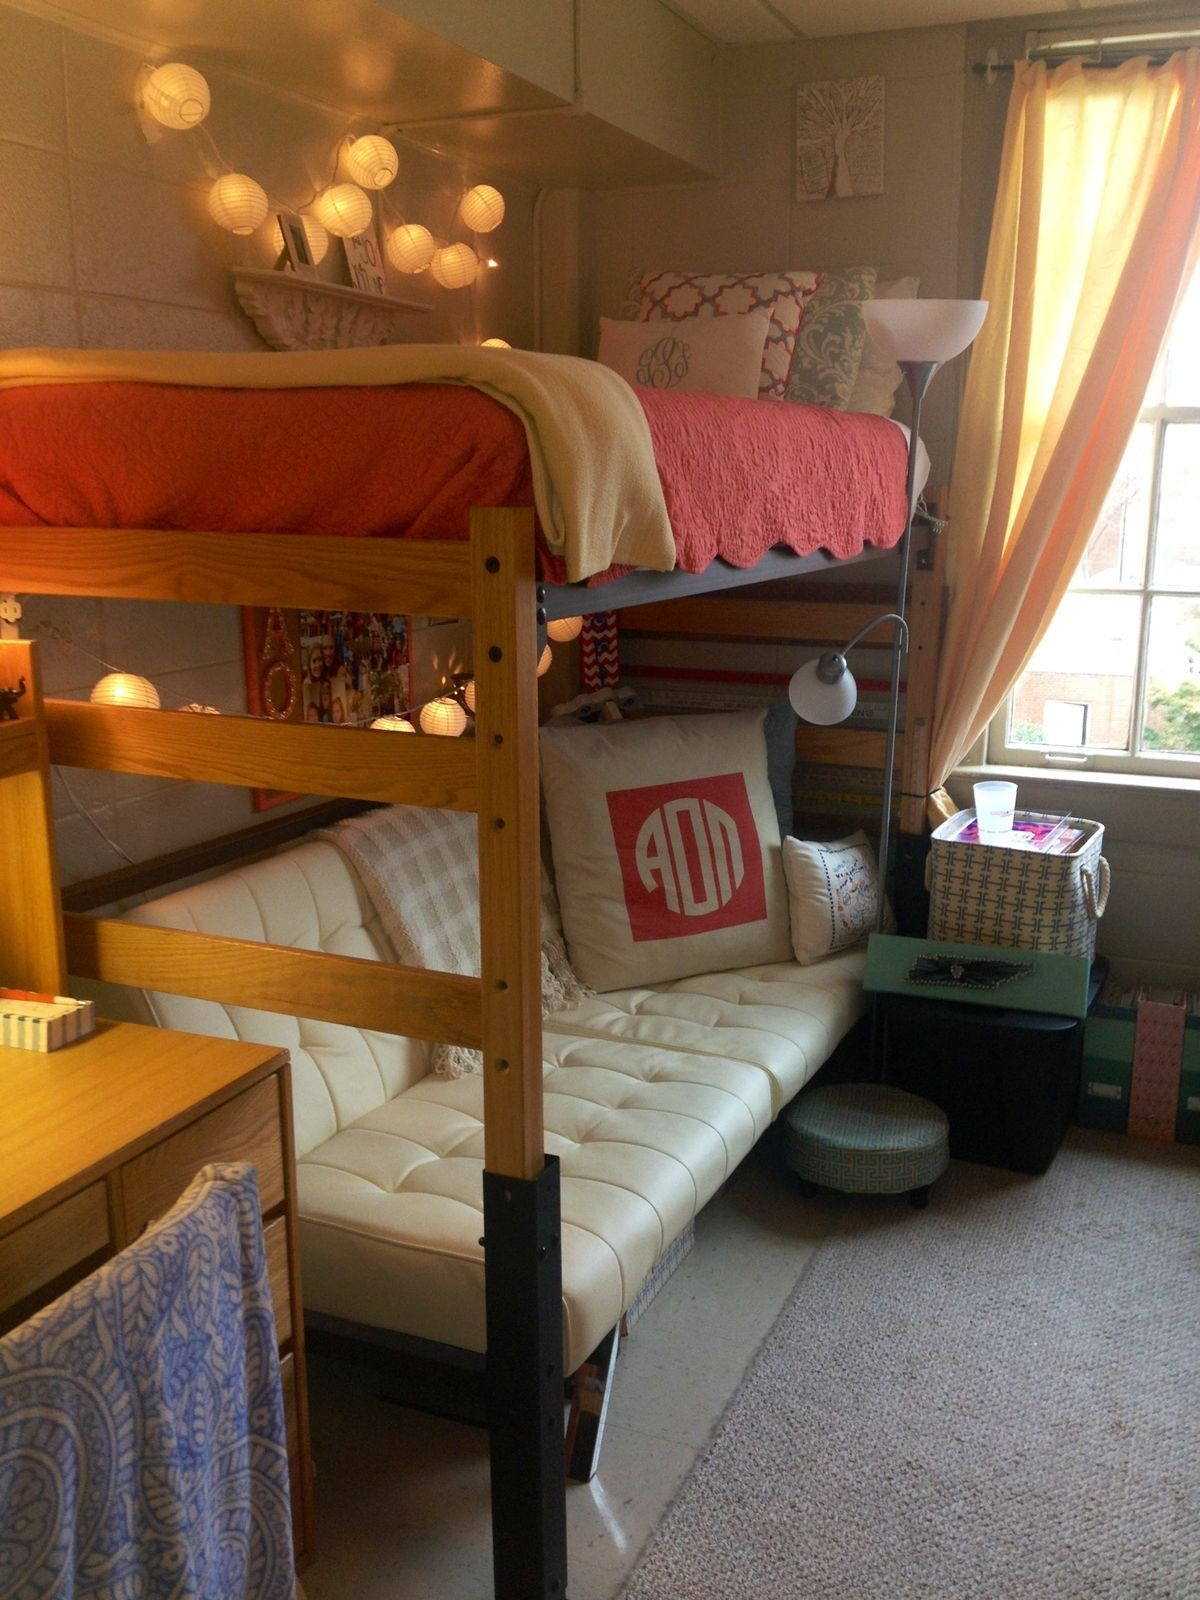 15 Amazing Dorm Room Pictures That Will Make You Excited For College Gurl